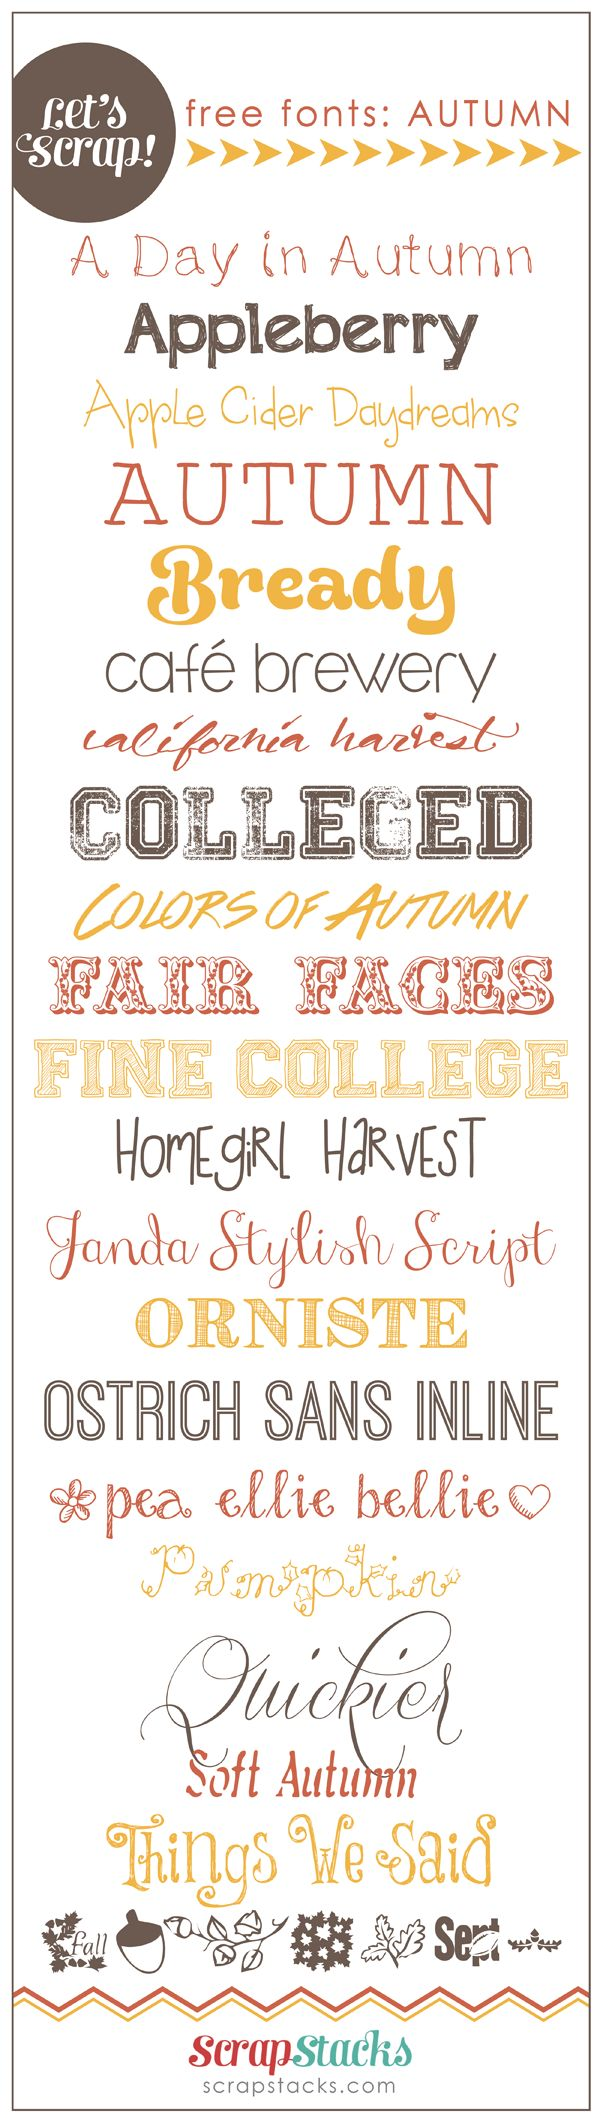 free autumn fonts for scrapbooking from Scrap Stacks